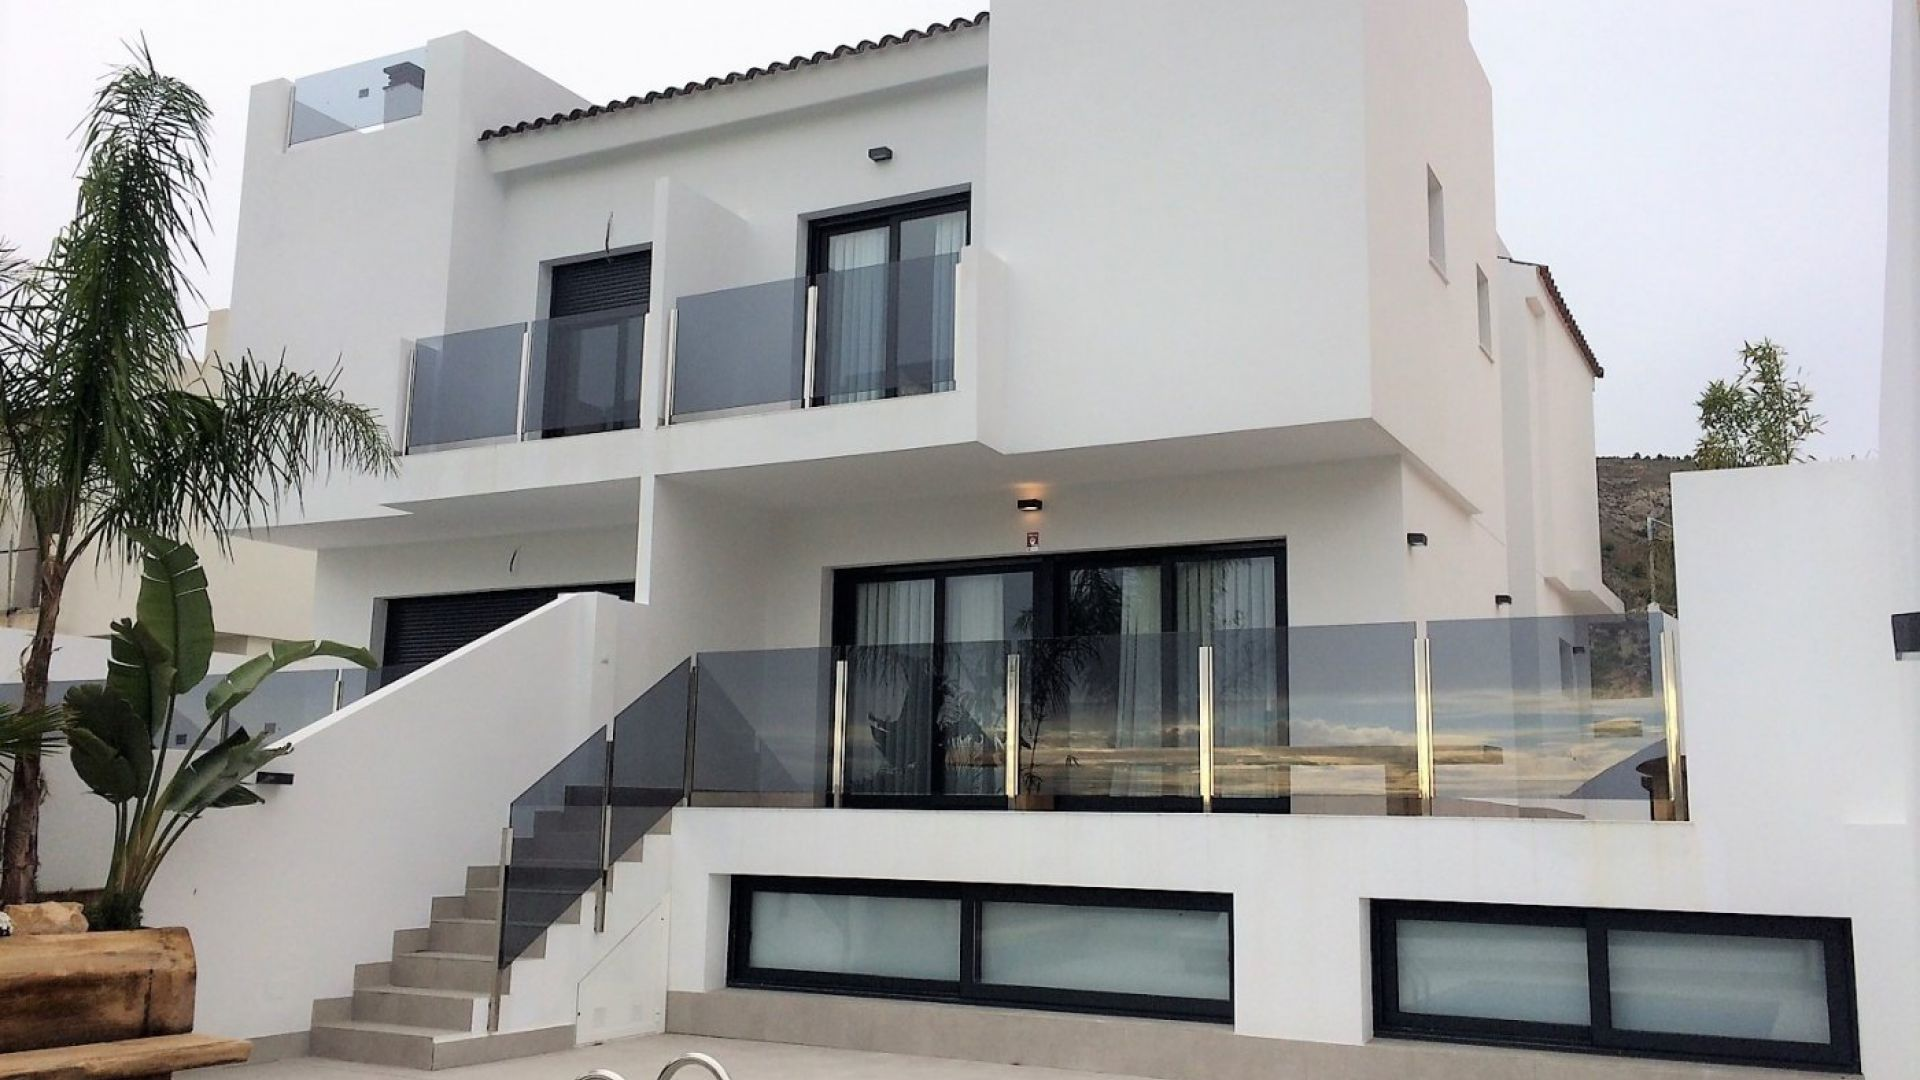 House in Orcheta, Alicante, Spain